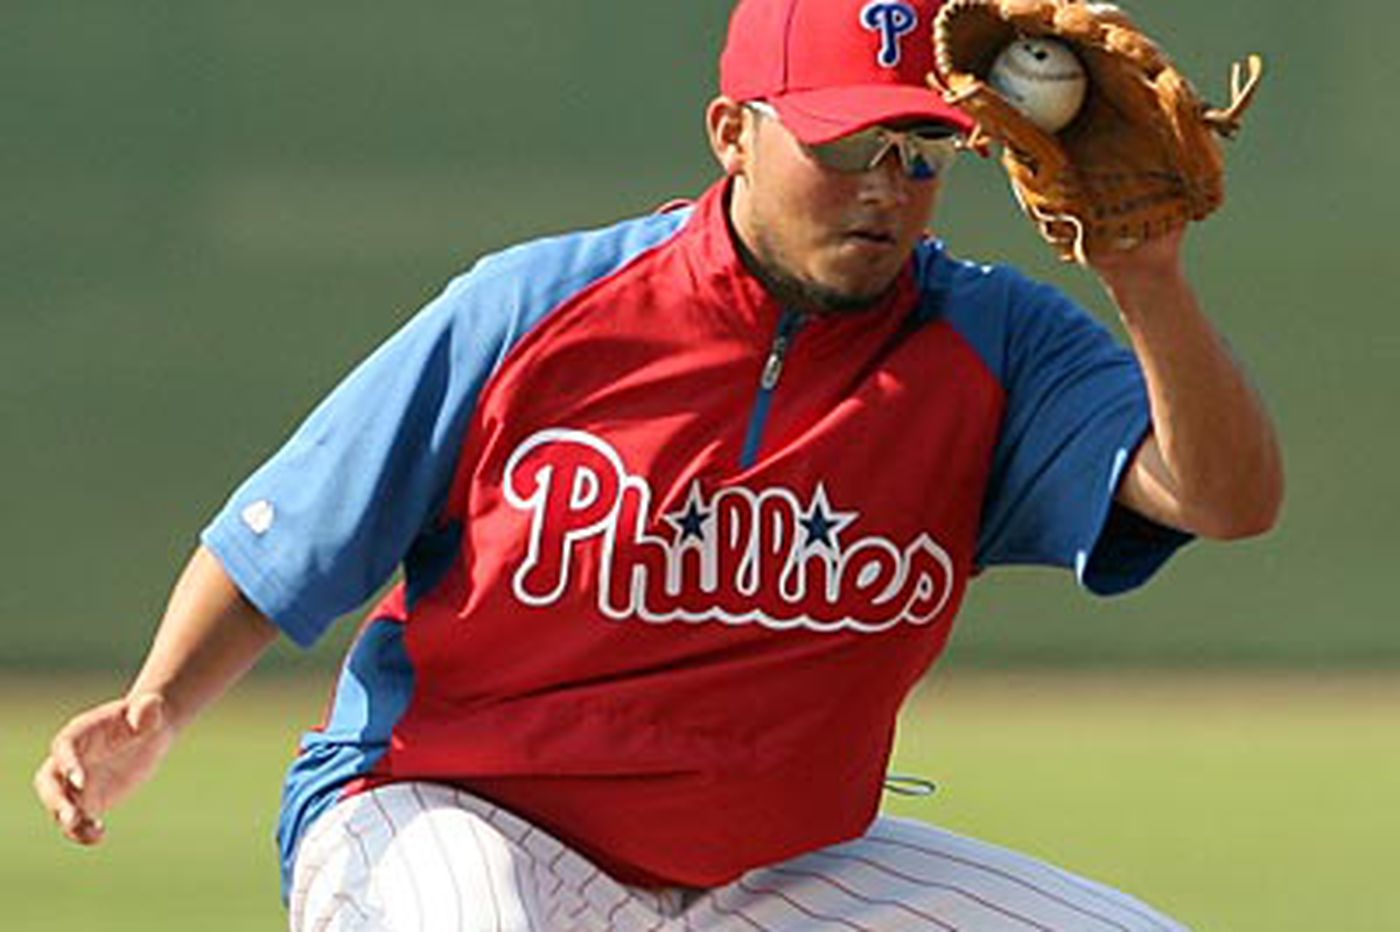 Phillies Notes: Future could be fast approaching for Phillies shortstop prospect Galvis